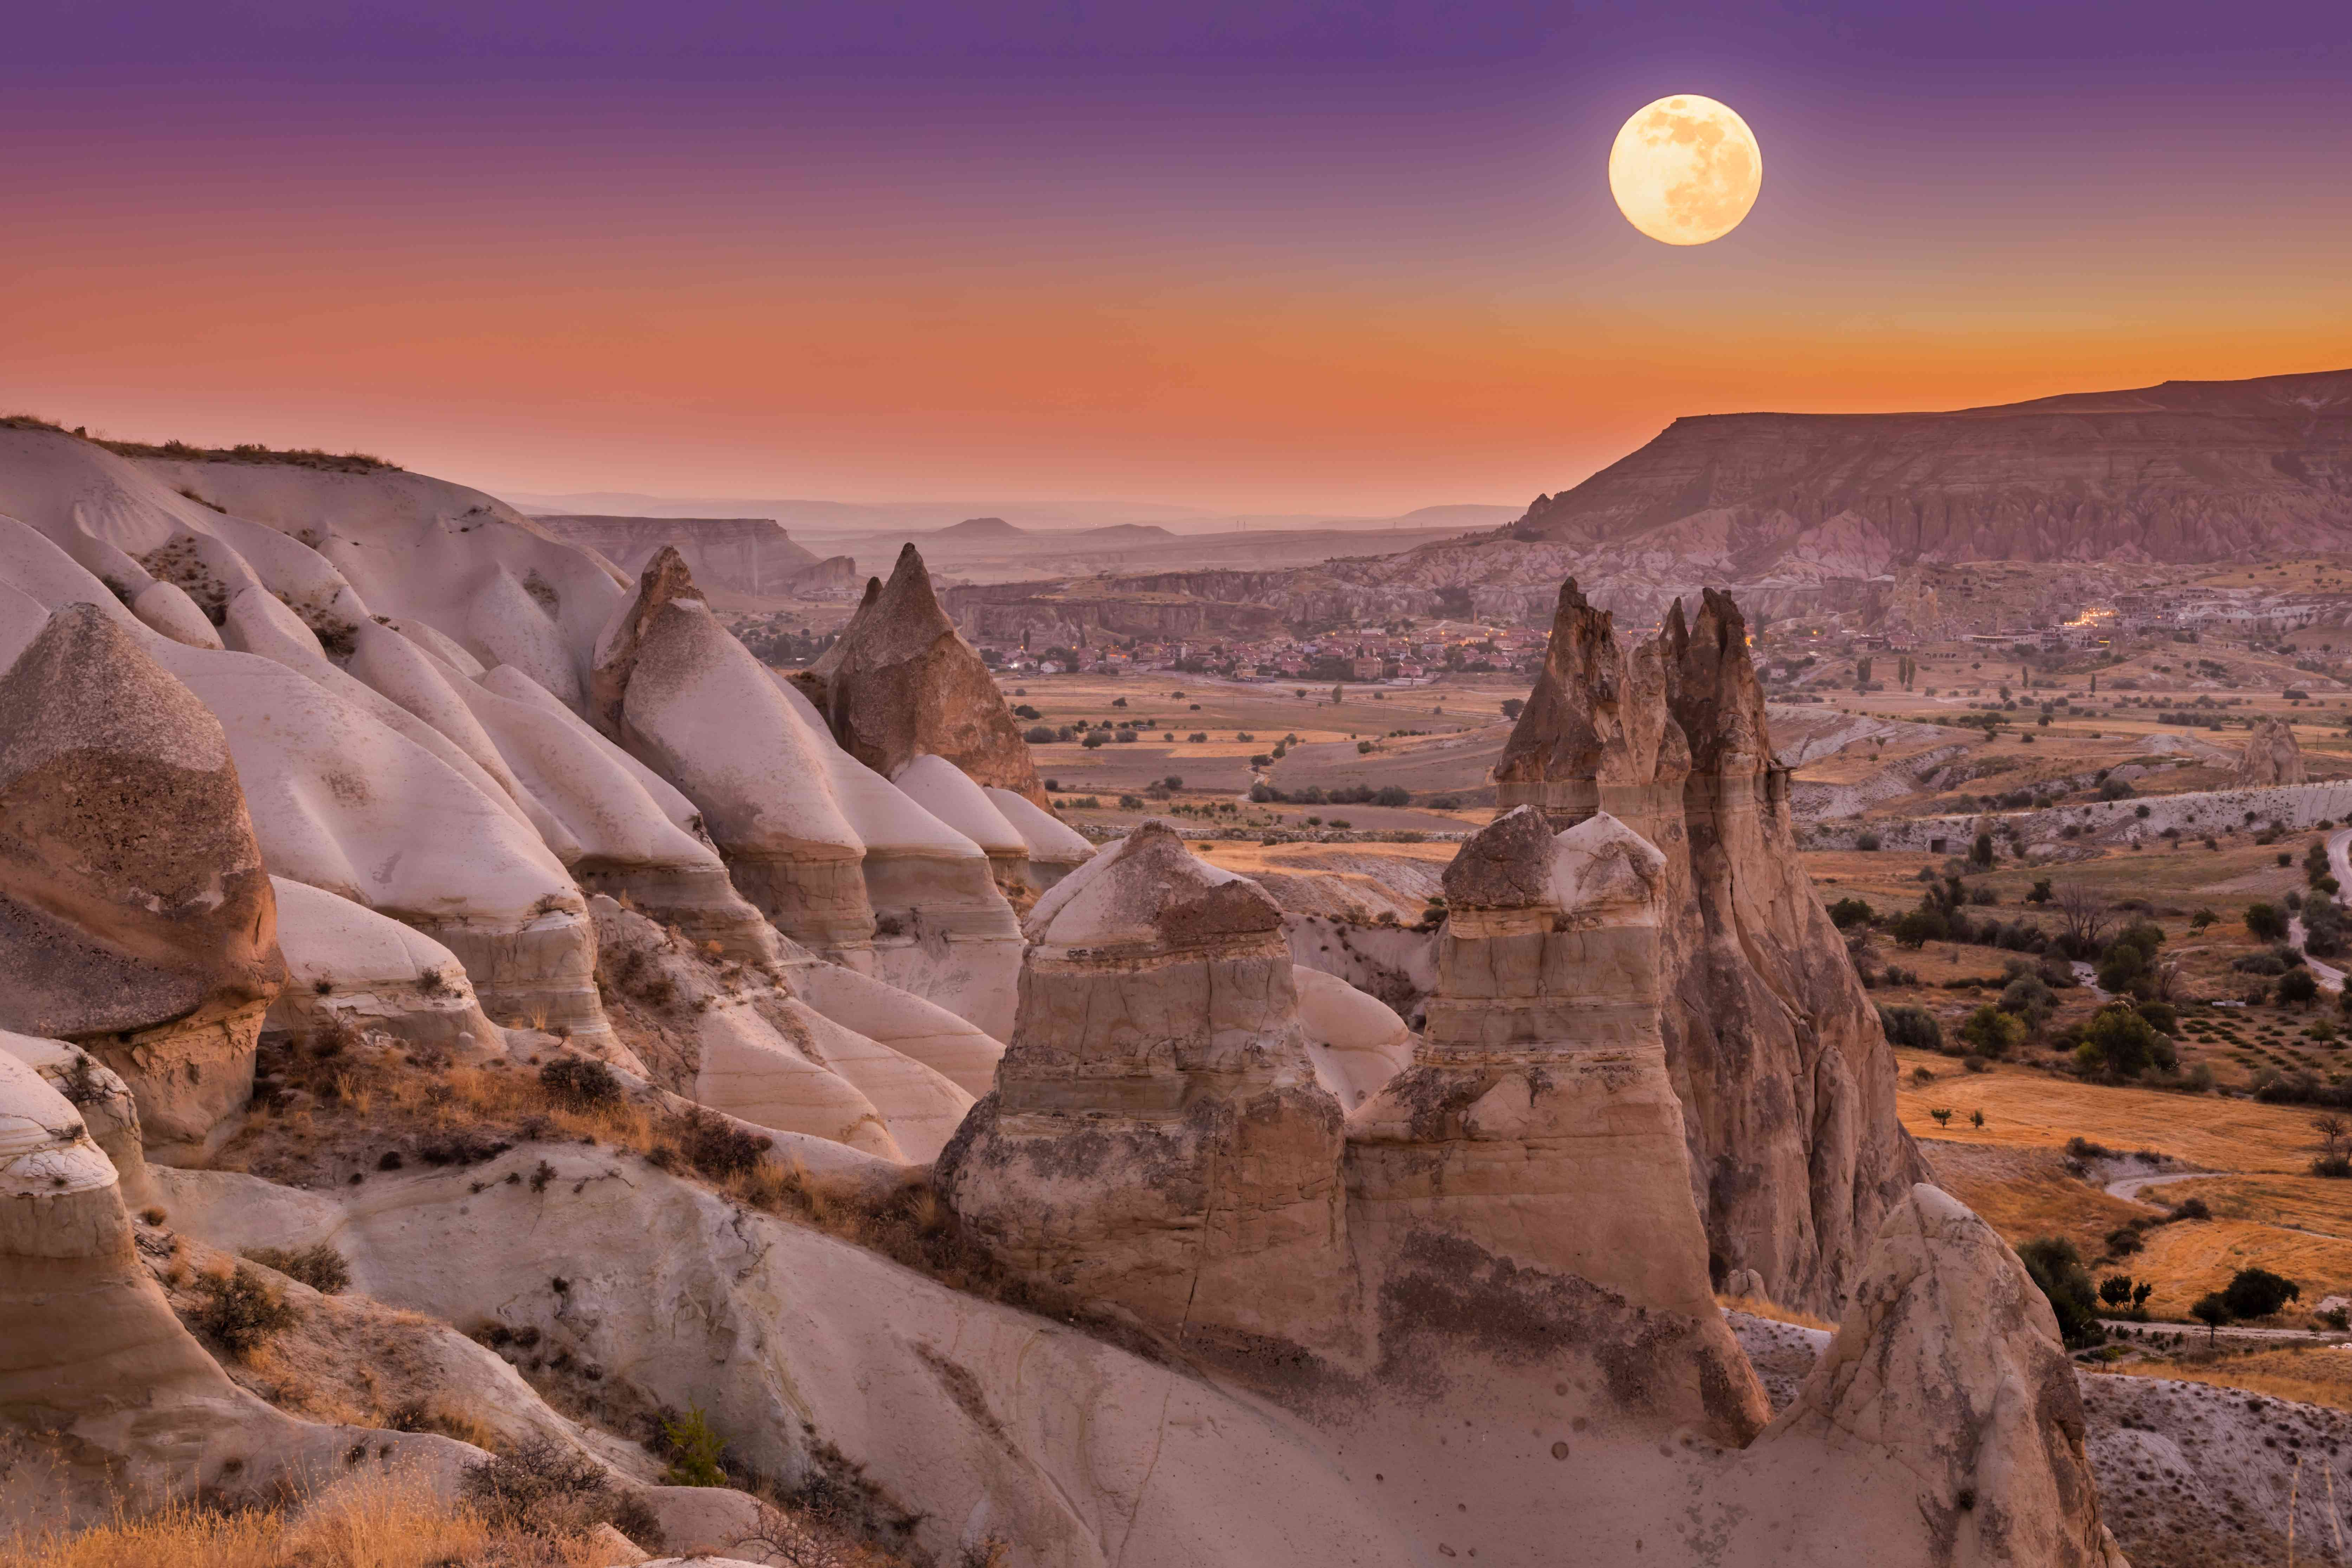 Full Moon over the rock formations of Love Valley in Cappadocia, Turkey